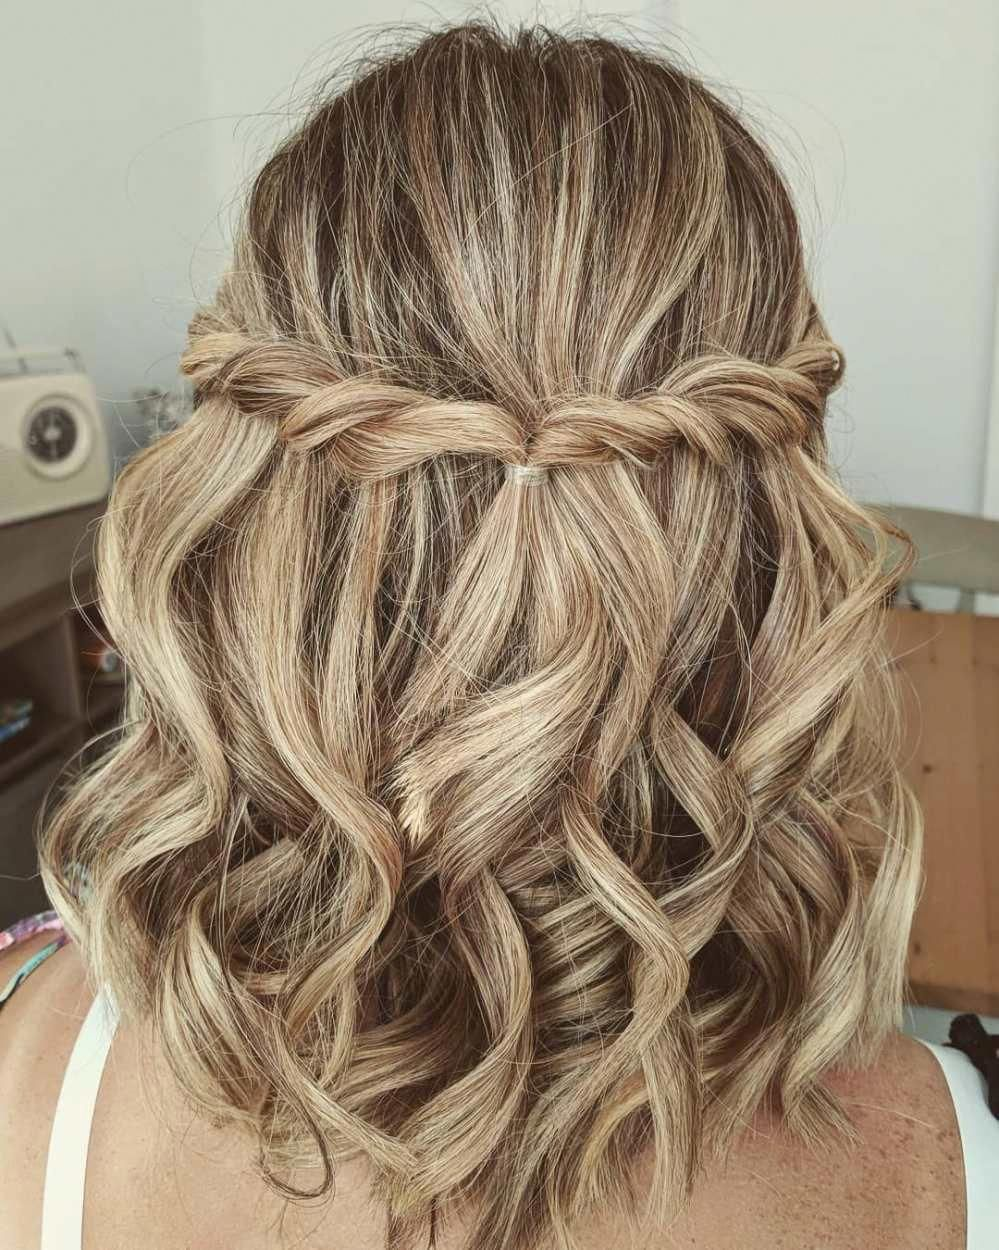 These Prom Hairstyles Half Up Half Down Truly Are Stylish Promhairstyleshalfuphalfdown Updos For Medium Length Hair Medium Length Hair Styles Hair Styles